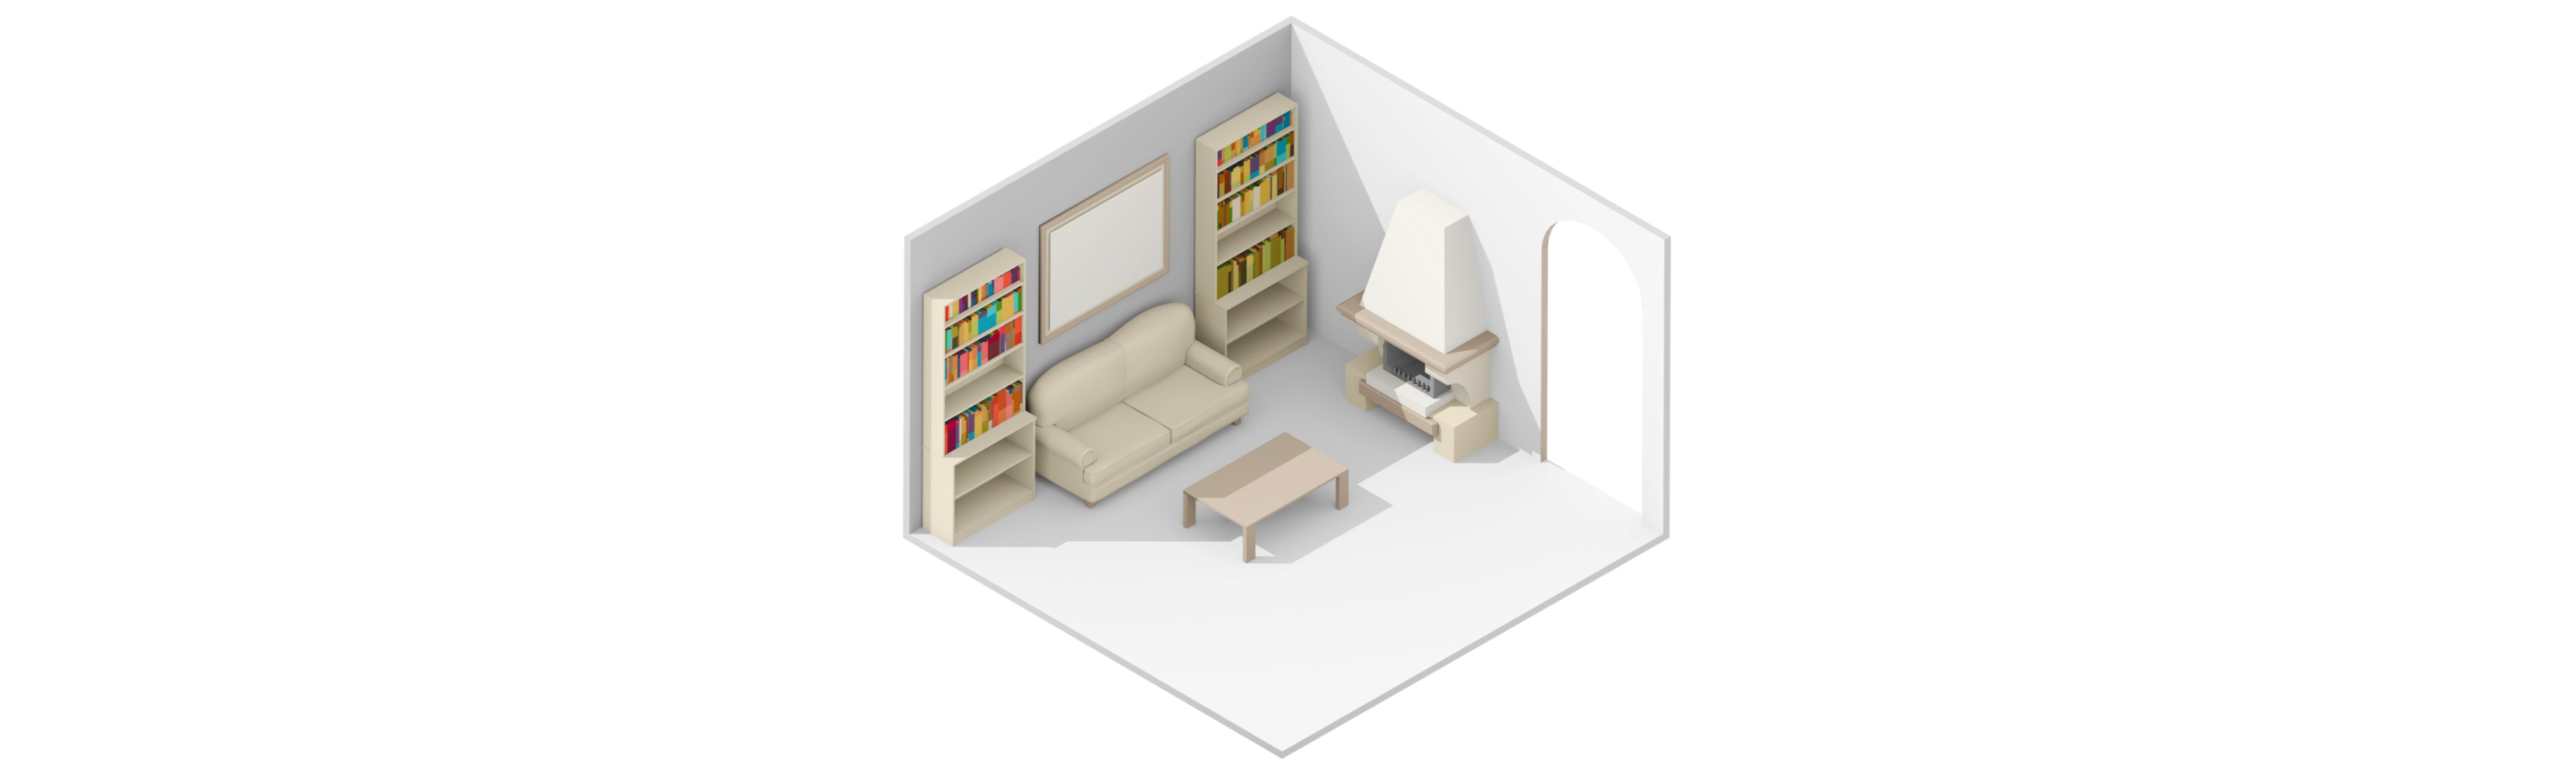 3D rendering of a living room.